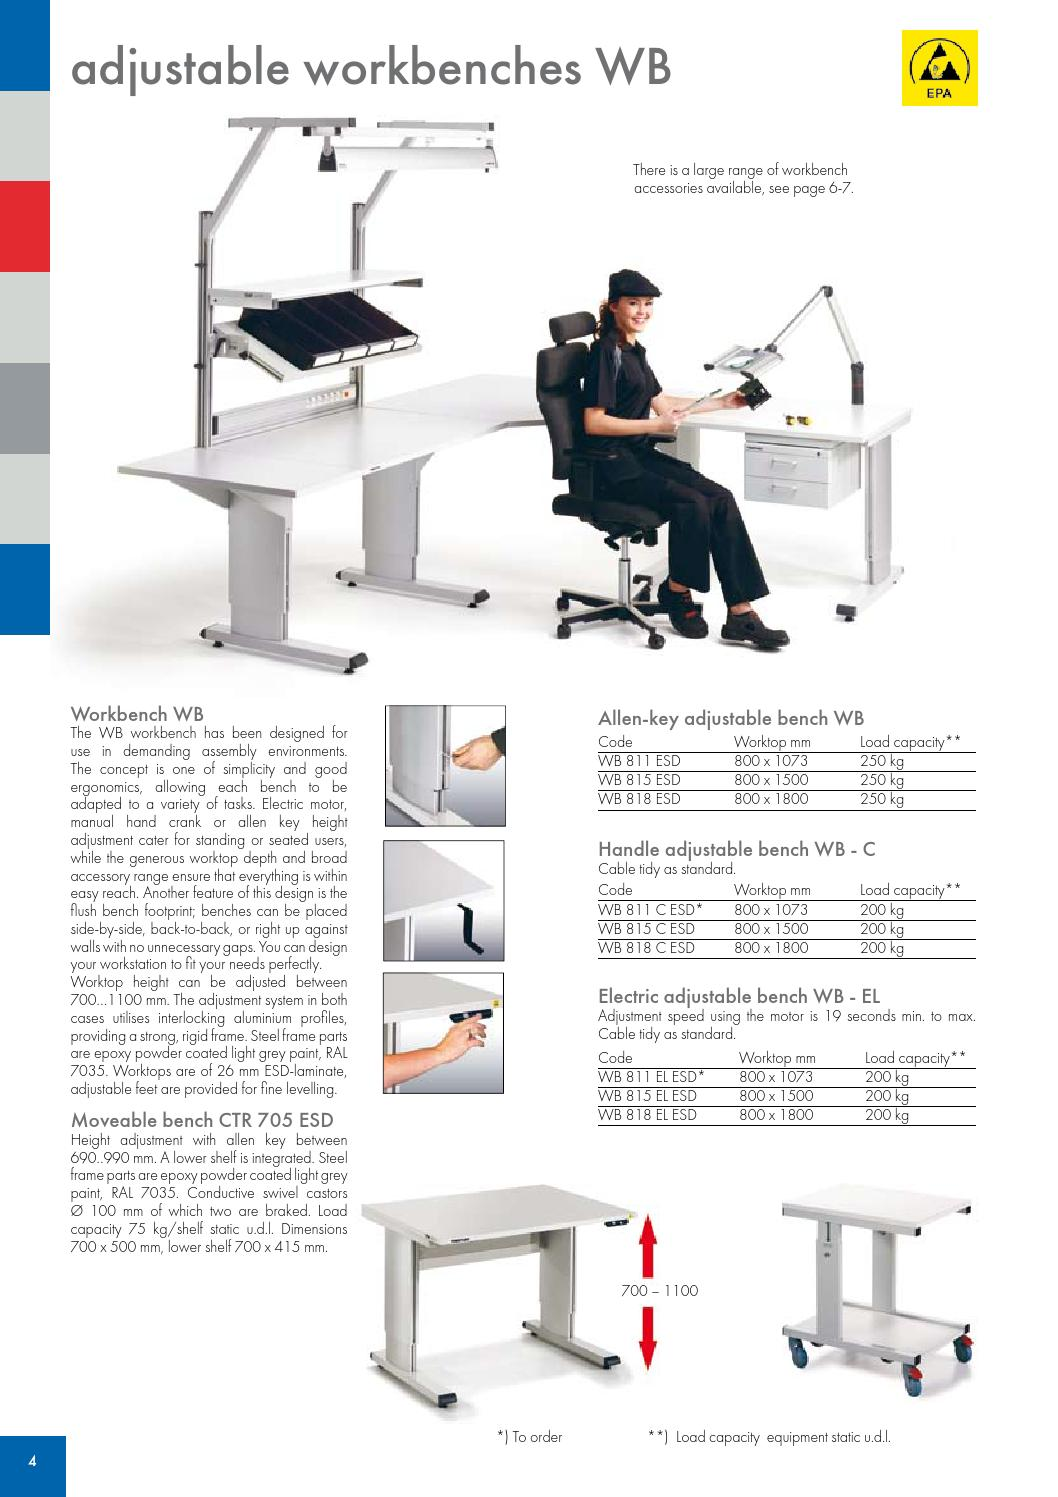 Esd products treston oy by isold - issuu